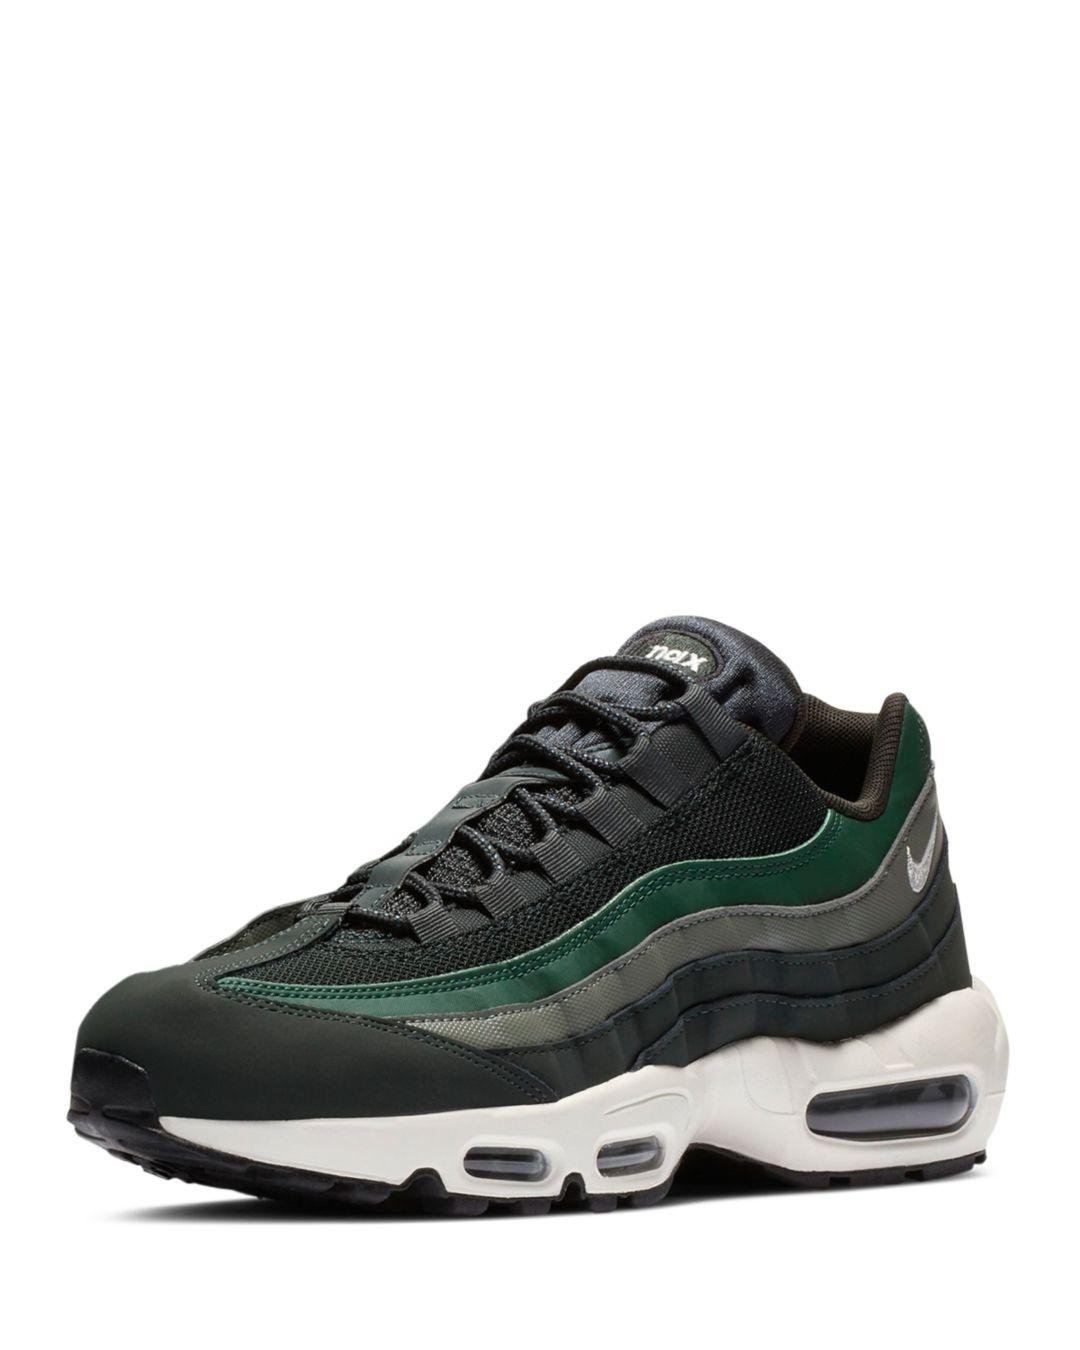 separation shoes f5d63 bc740 Green Men's Air Max 95 Essential Sneaker